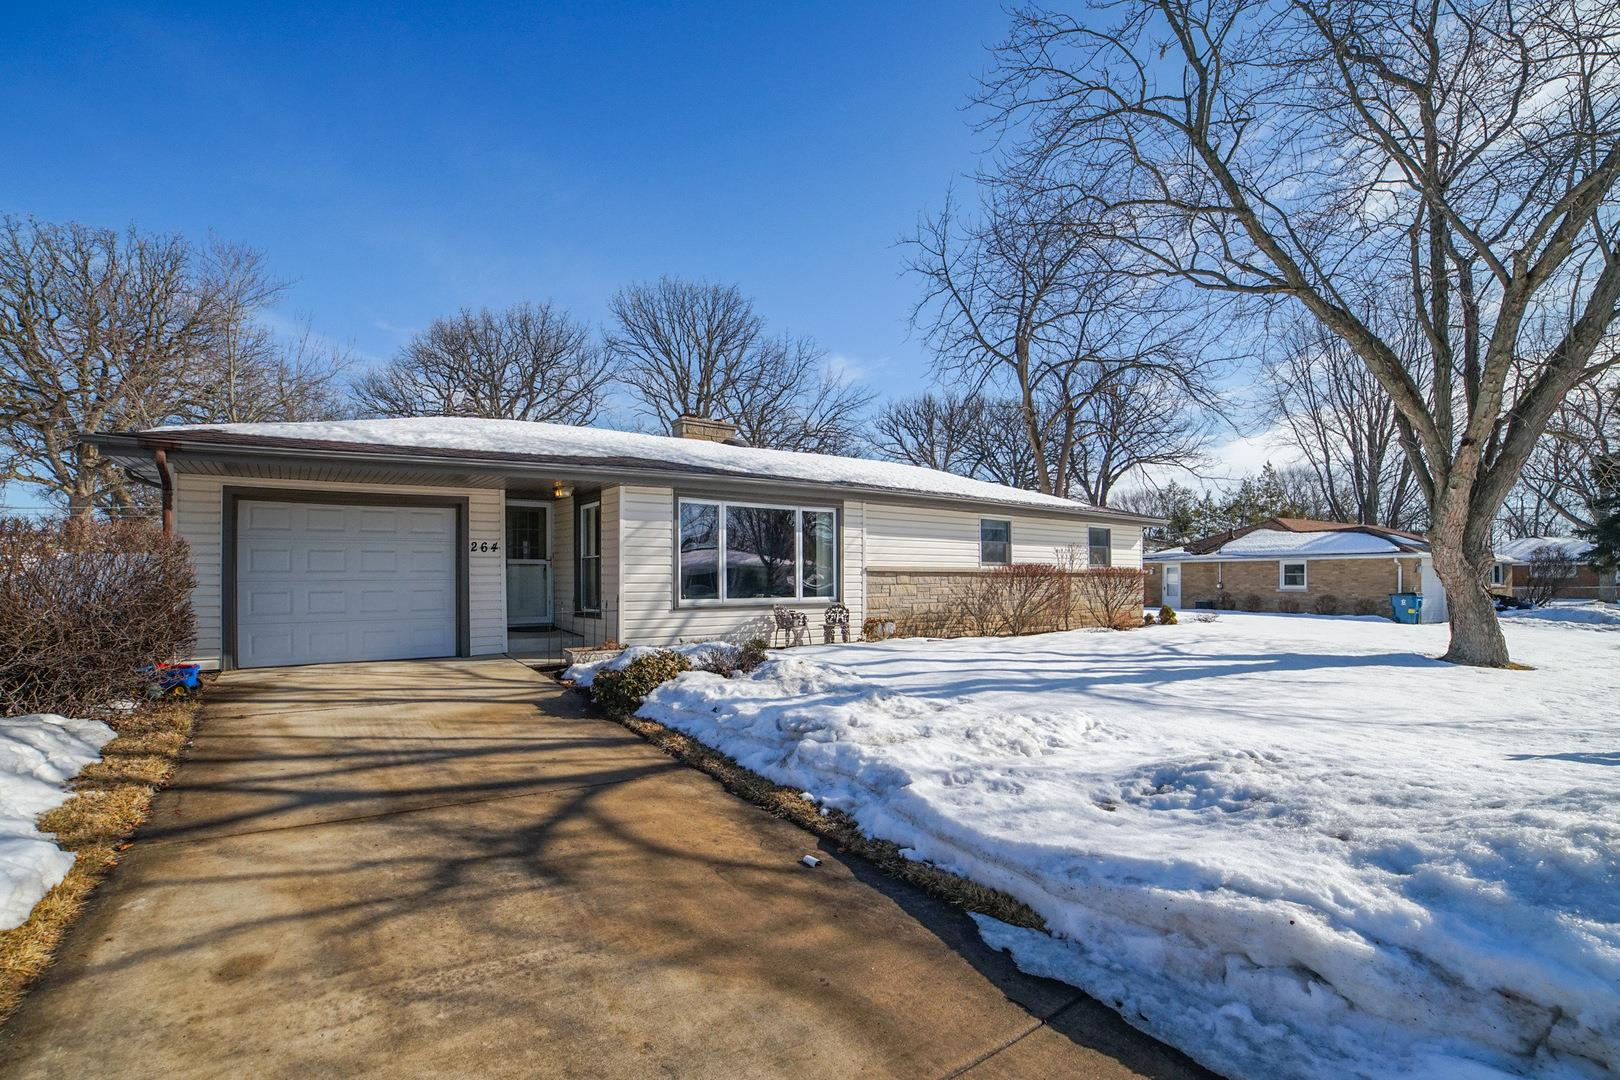 264 Esther Circle, Bourbonnais, IL 60914 - #: 11003352